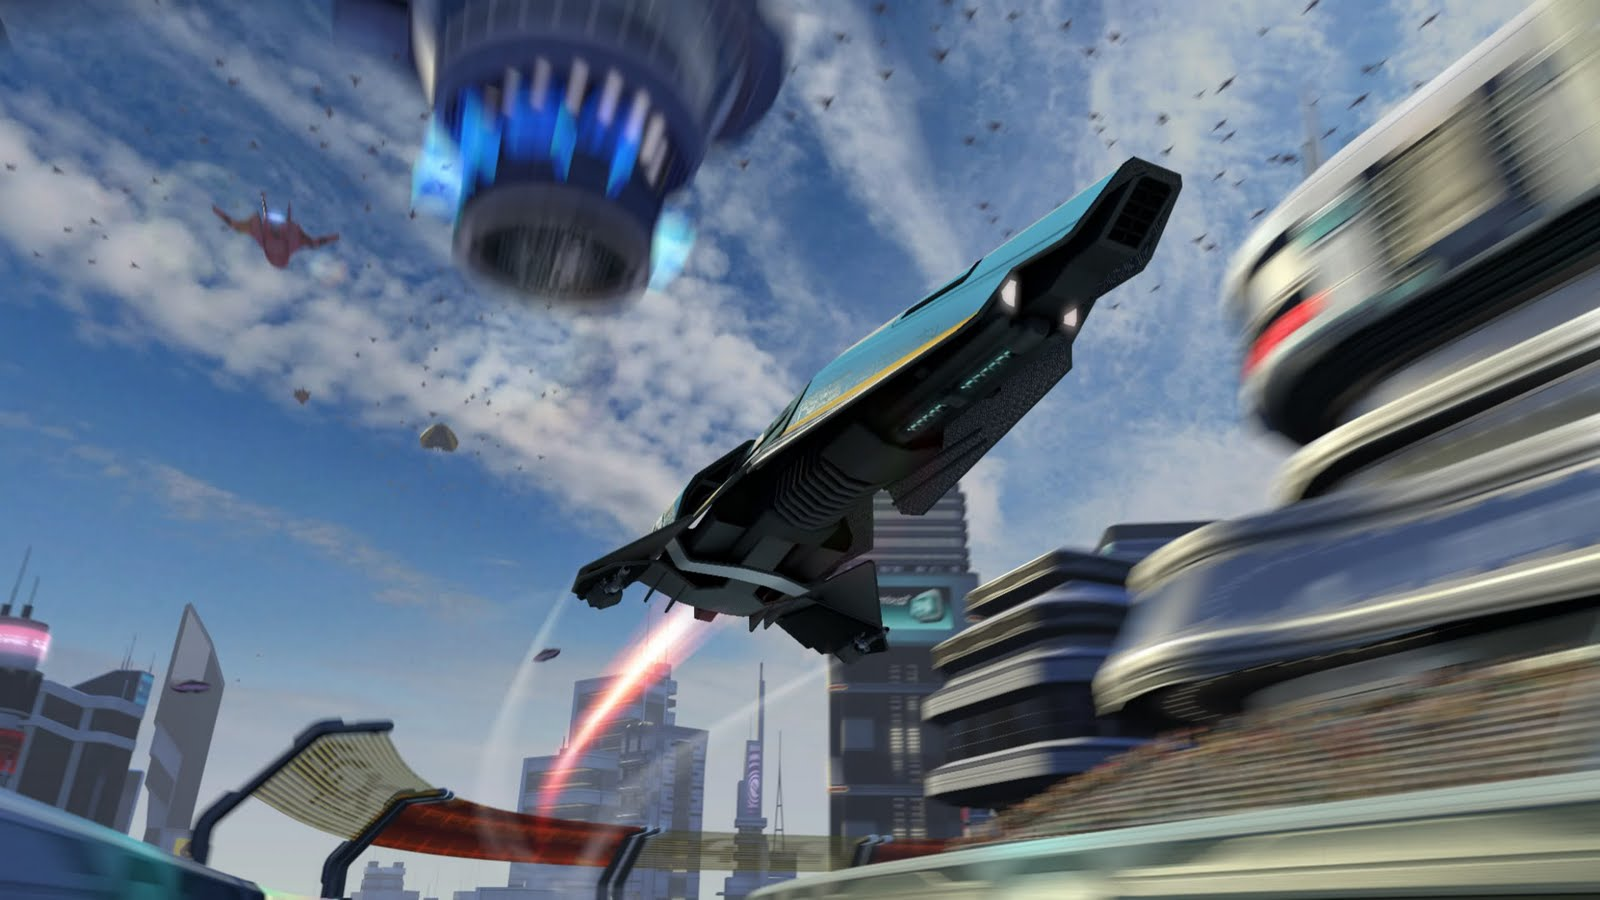 Wipeout Hd Wallpaper Wipeout 2048 Hd Wallpapers Hd Wallpapers Backgrounds